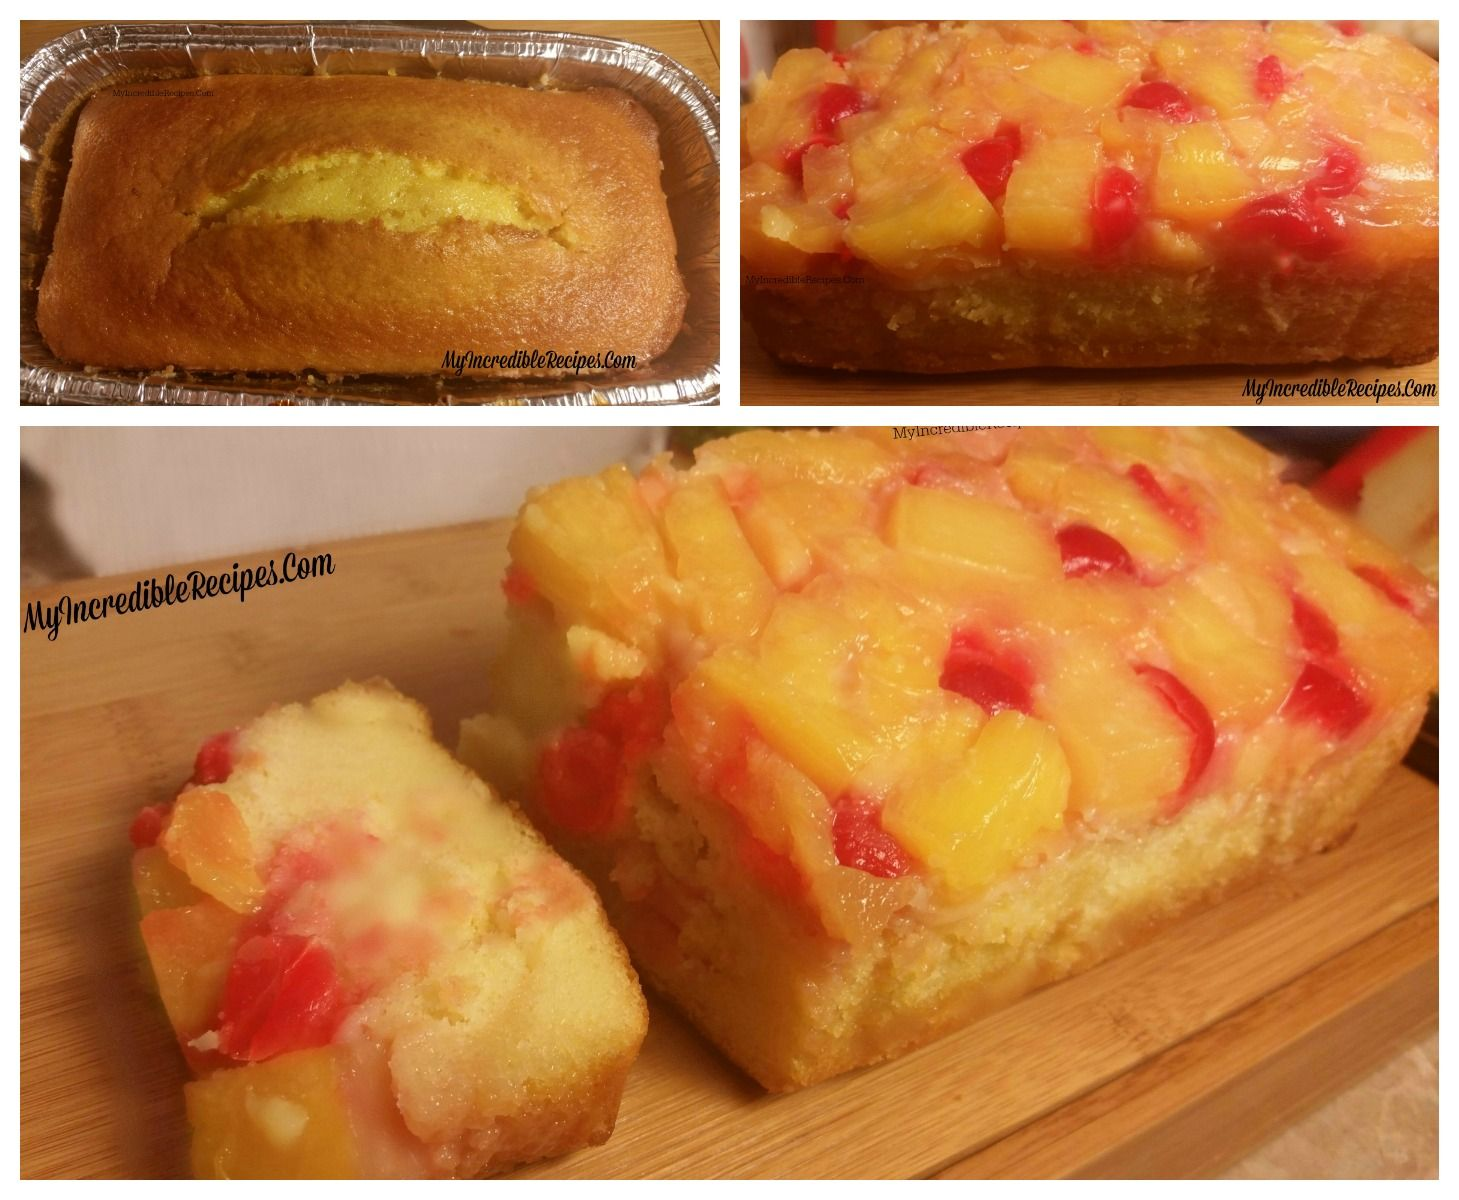 Pineapple Upside Down Bread Recipe Dessert Bread Food Recipes